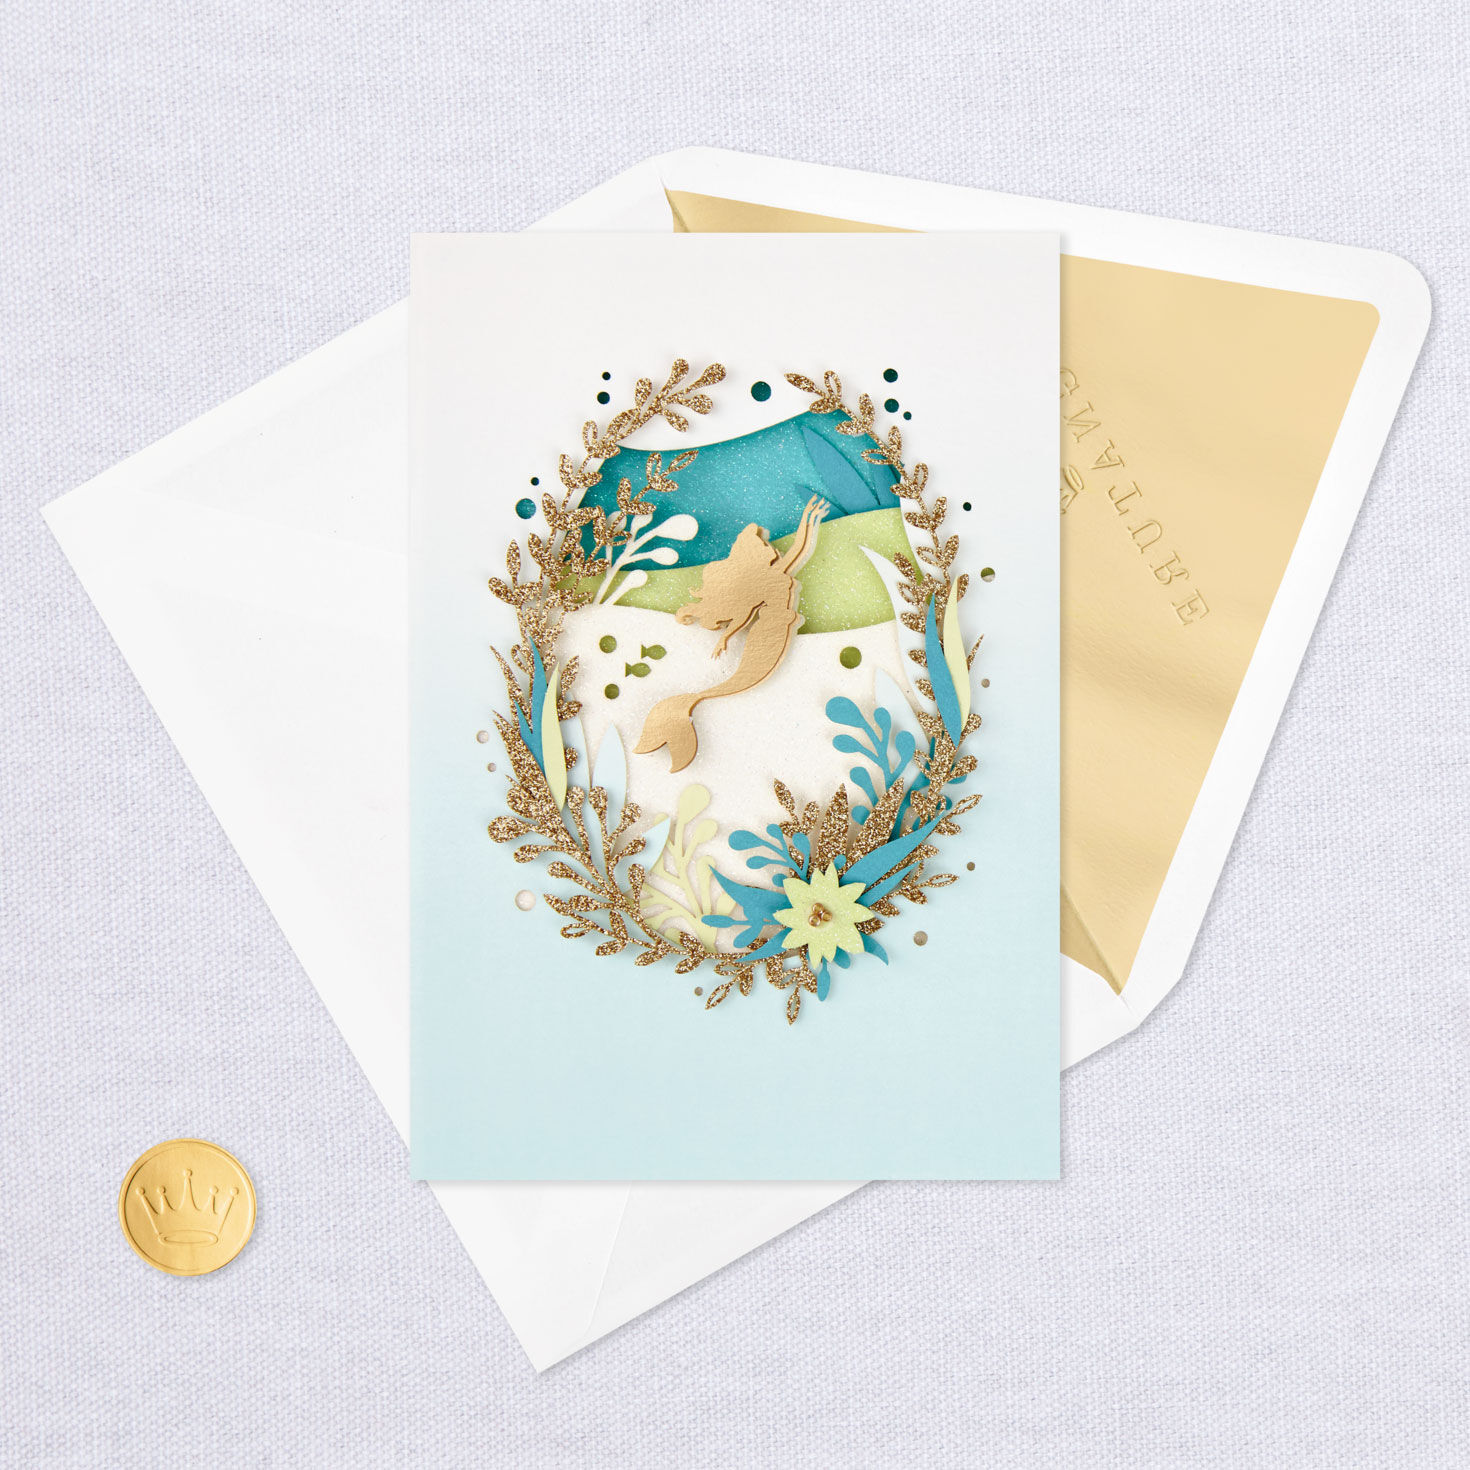 graphic regarding Printable Thinking of You Card referred to as Disney The Minor Mermaid Blank Asking yourself of Your self Card